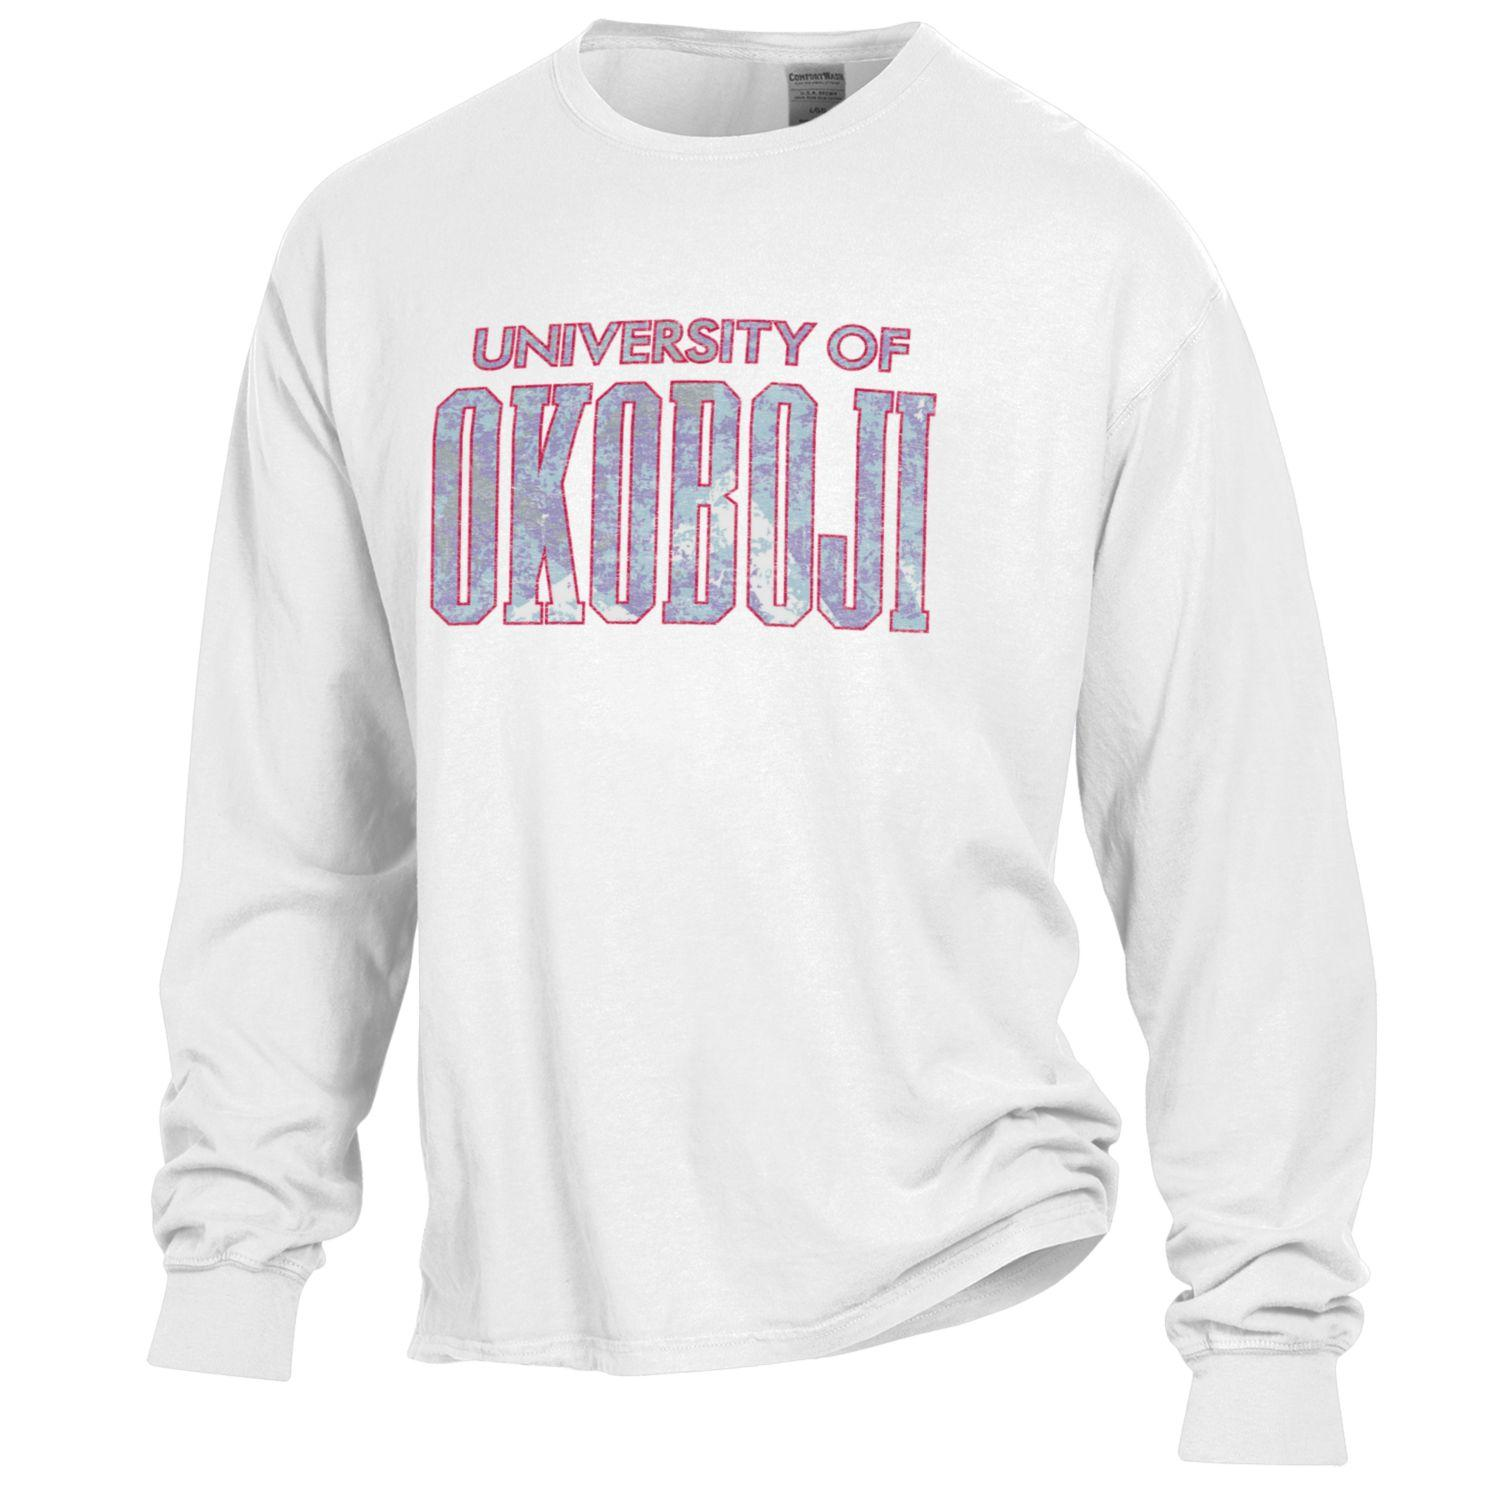 University of Okoboji Glass Rock - Garment Dyed Long Sleeve - White